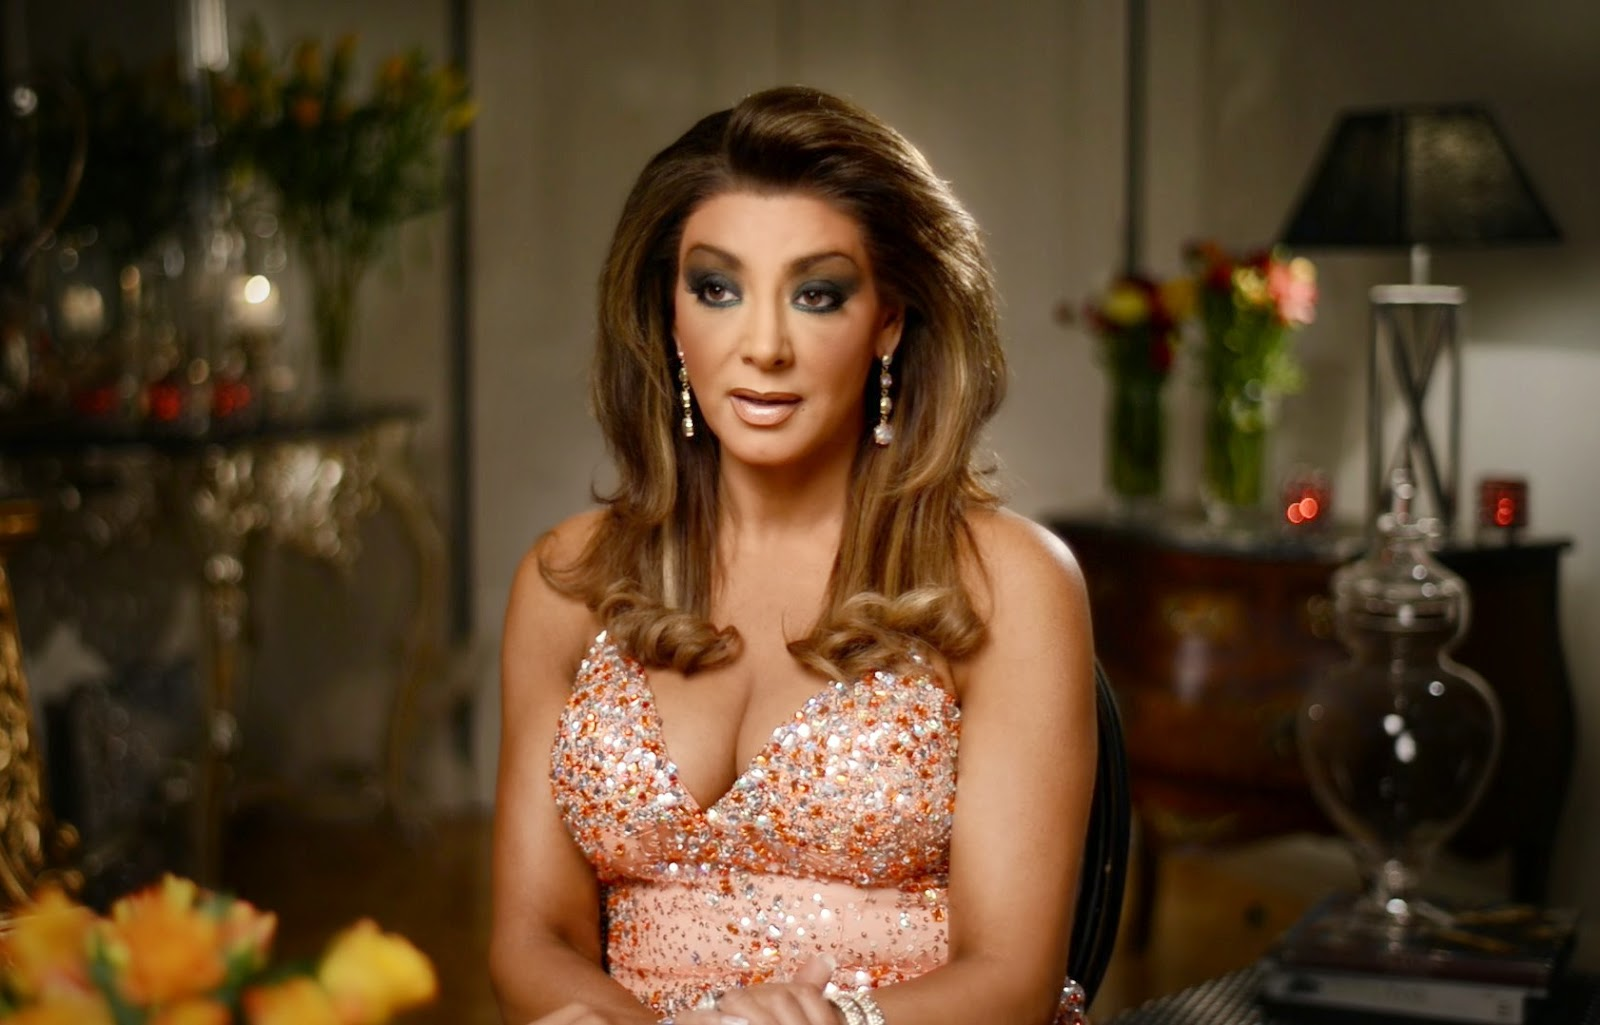 Celebrity Gina Liano nude (66 foto and video), Topless, Sideboobs, Boobs, panties 2006